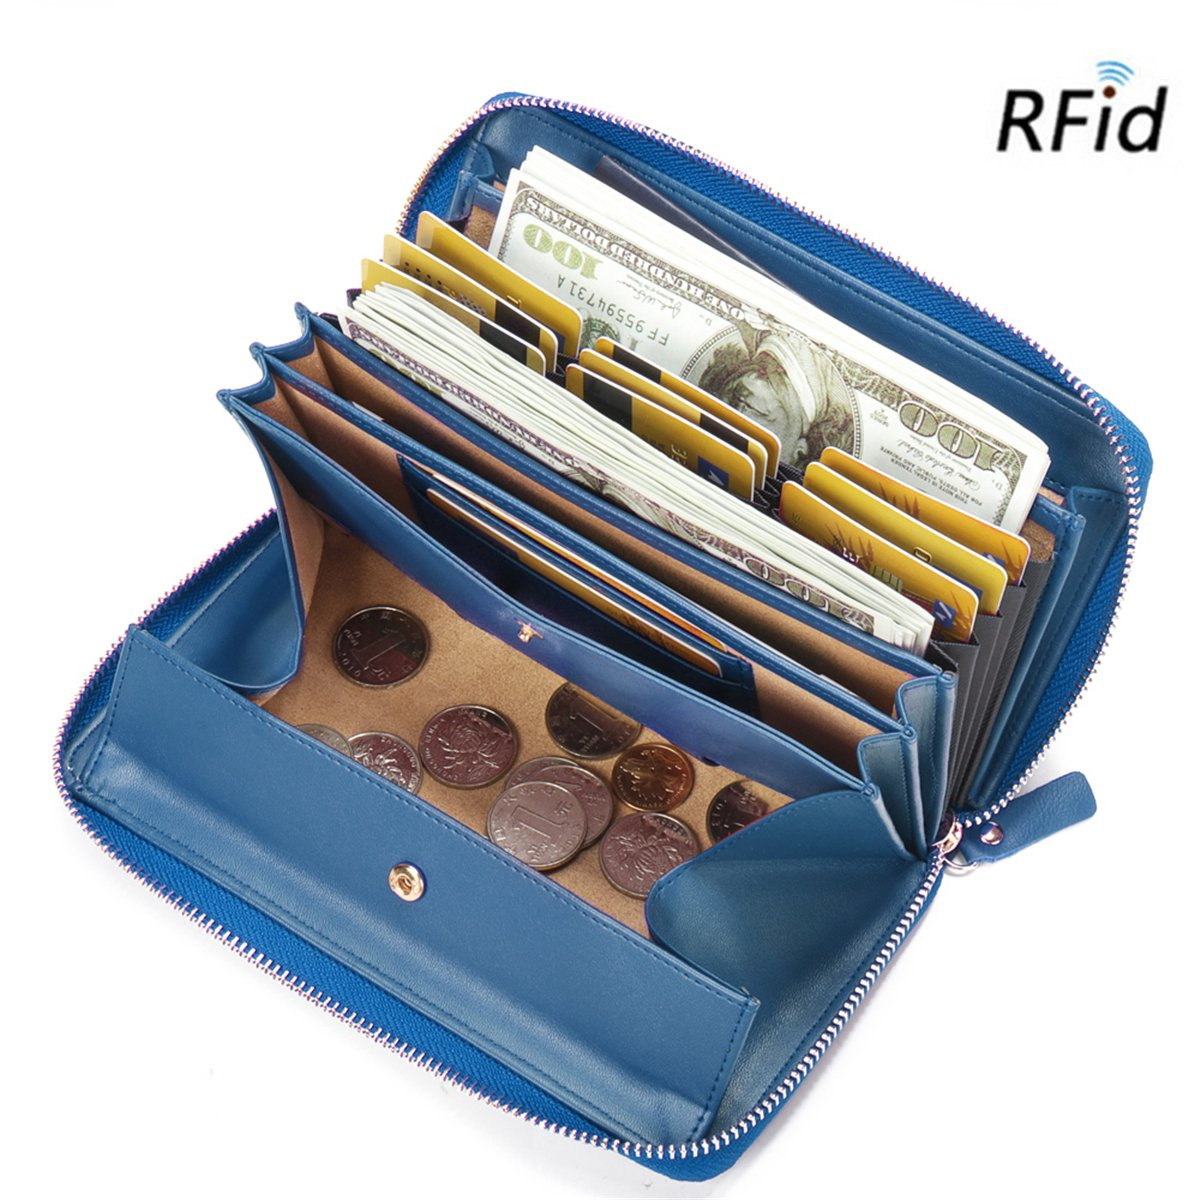 Brenice Women Wallet Card Holder, RFID Cowhide Zipper Long Wallets Large Capacity 11 Card Slots Coin Purse Blue 7.87''x 1.18''x 4.53''(LxWxH)